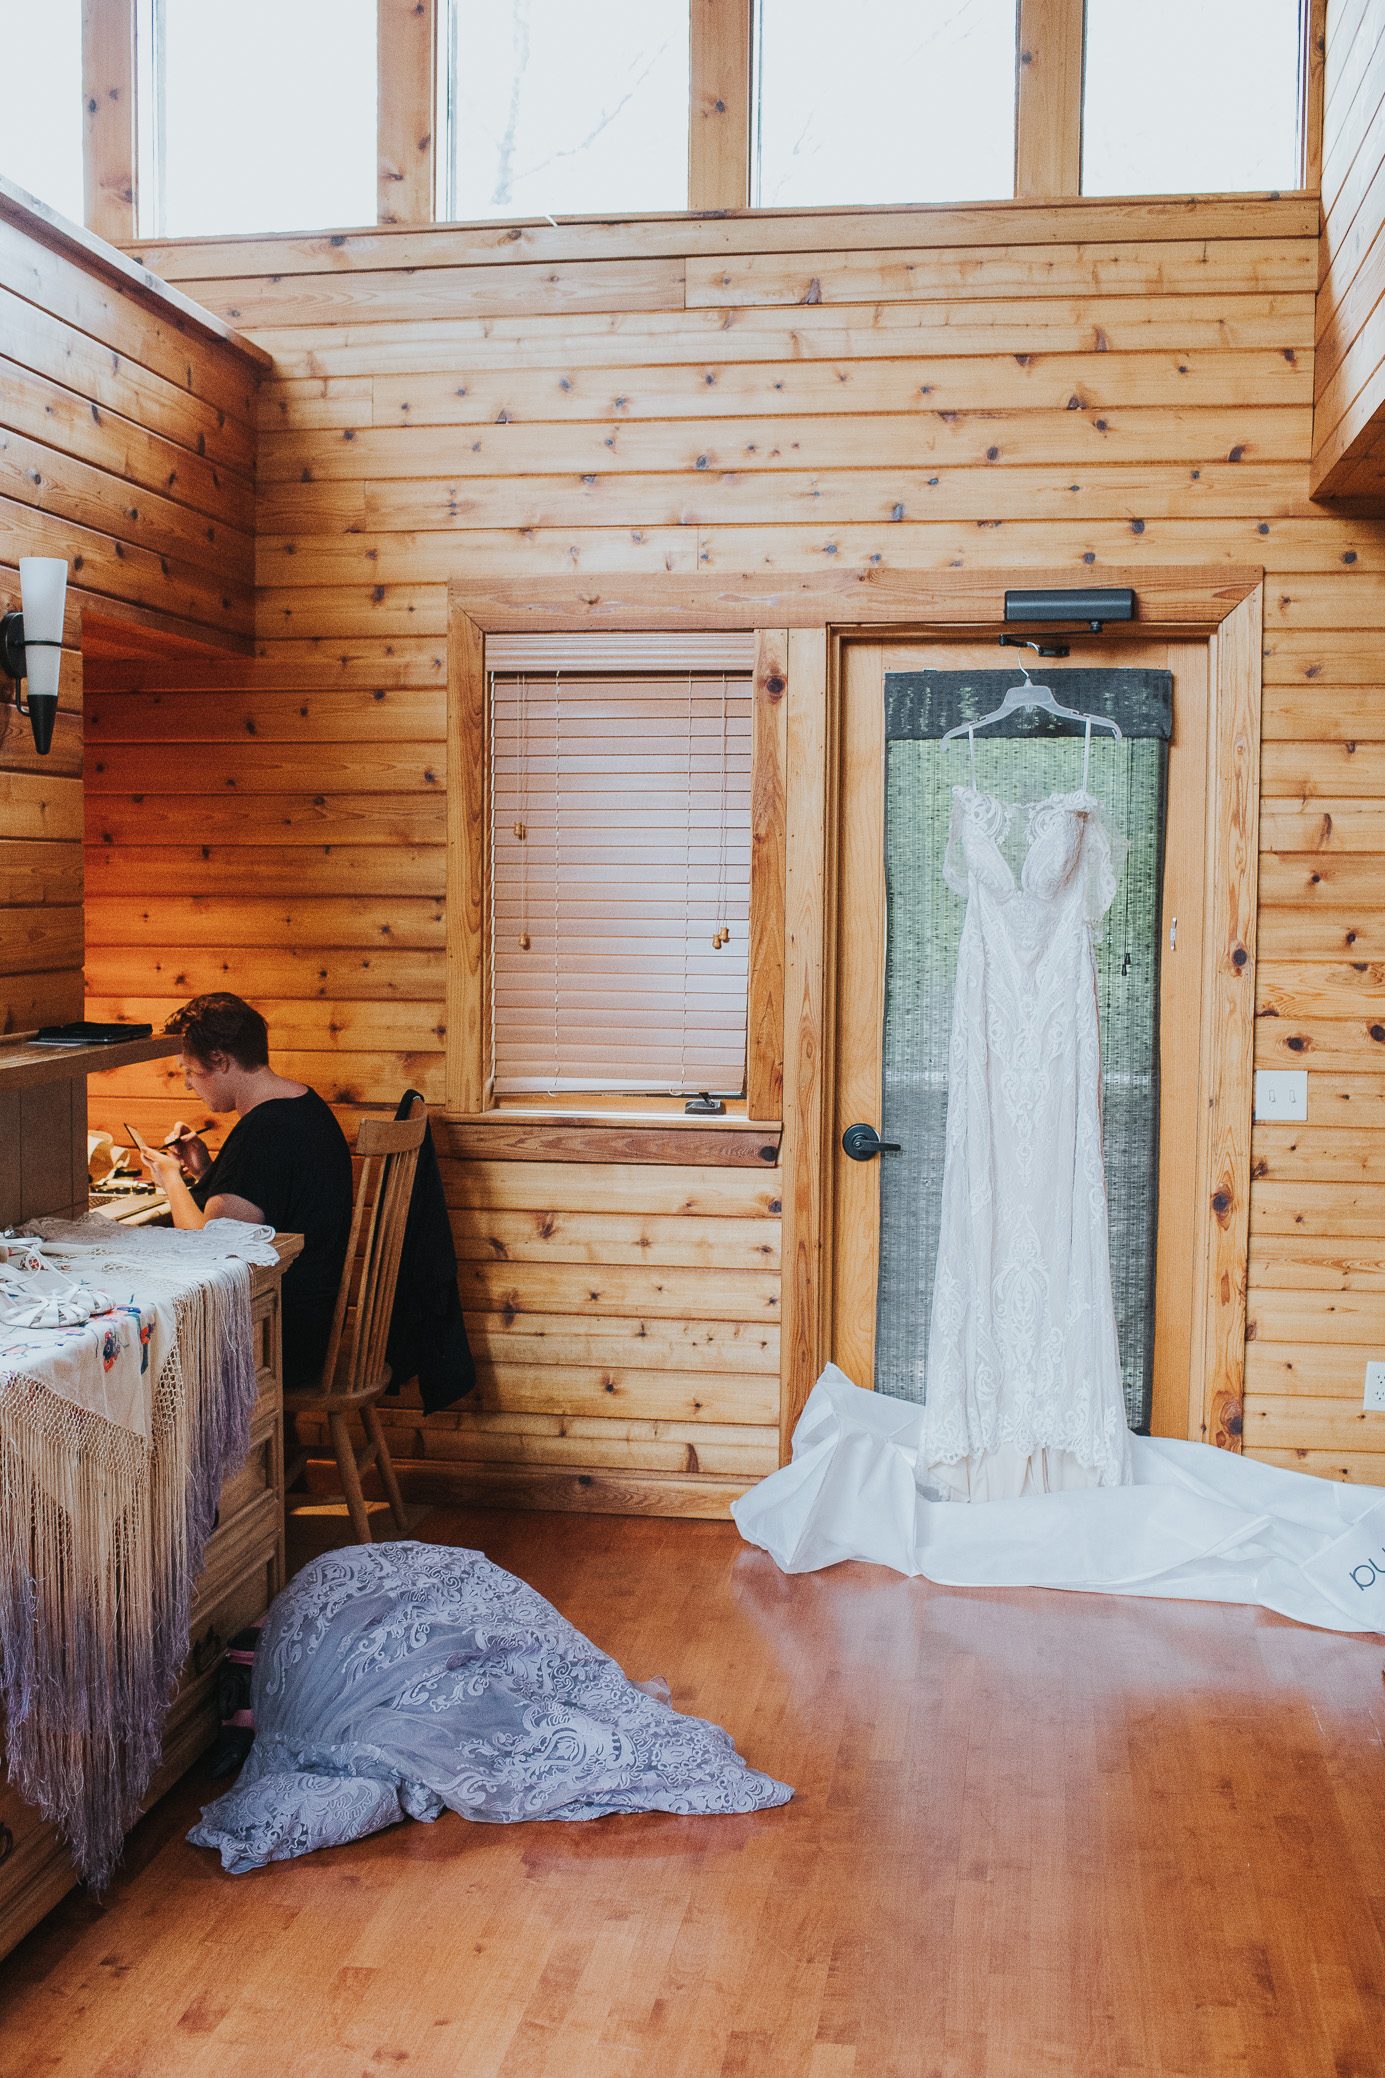 Alabama wedding photography at Lake Guntersville State Park by David A. Smith of DSmithImages Wedding Photography, Portraits, and Events, a wedding photographer in Birmingham, Alabama and Atlanta, Georgia.